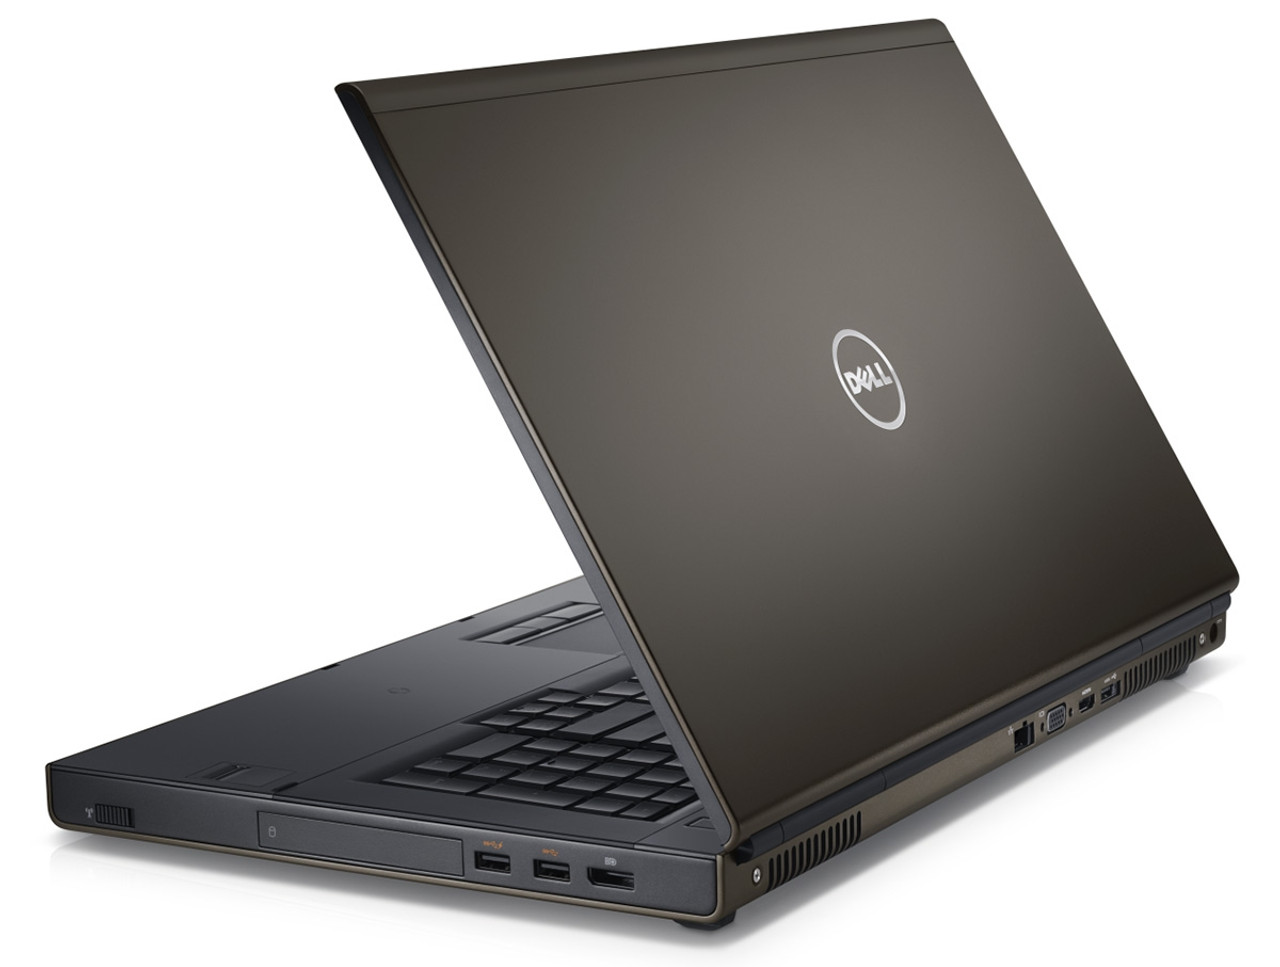 Dell Precision M6700 Laptop Quad Core i7 2.8GHz, 16GB Ram, 250GB SSD, DVD-RW, Windows 10 Pro 64 Notebook